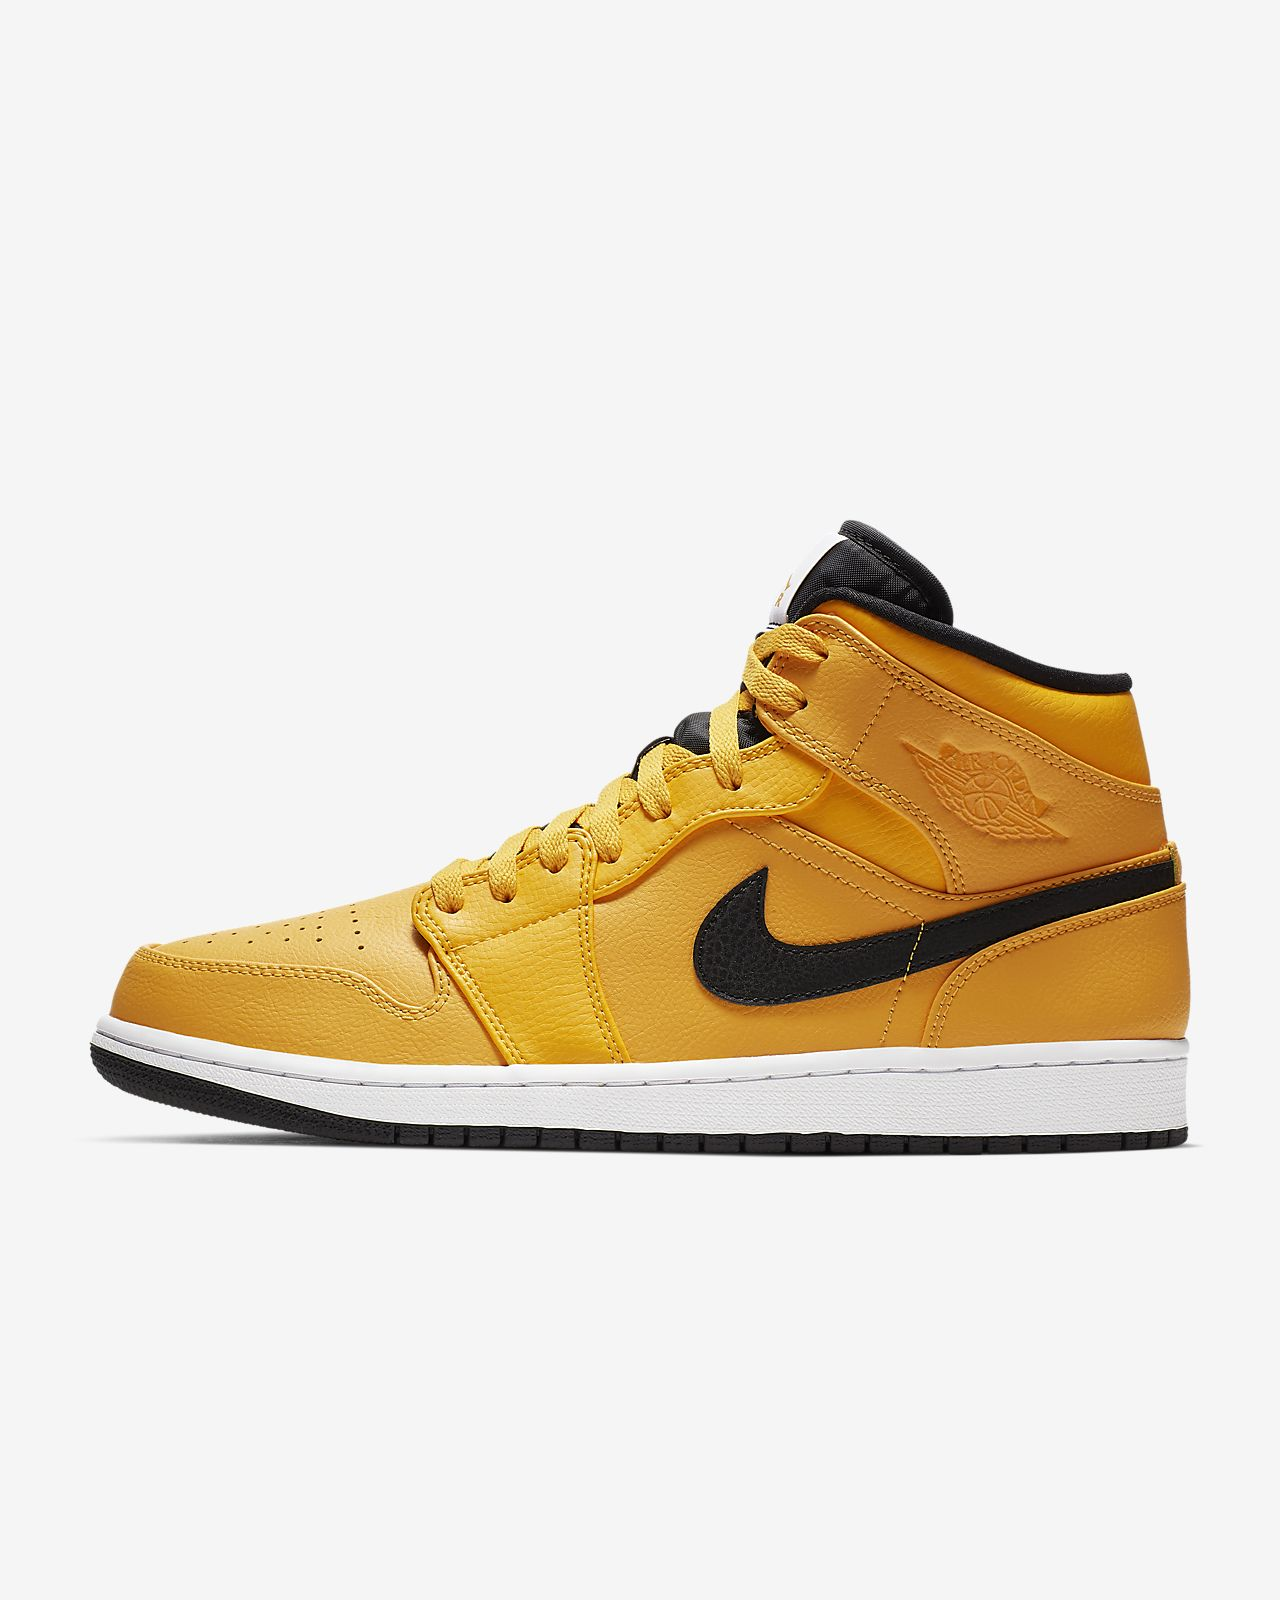 on sale 2b389 dca50 Men s Shoe. Air Jordan 1 Mid